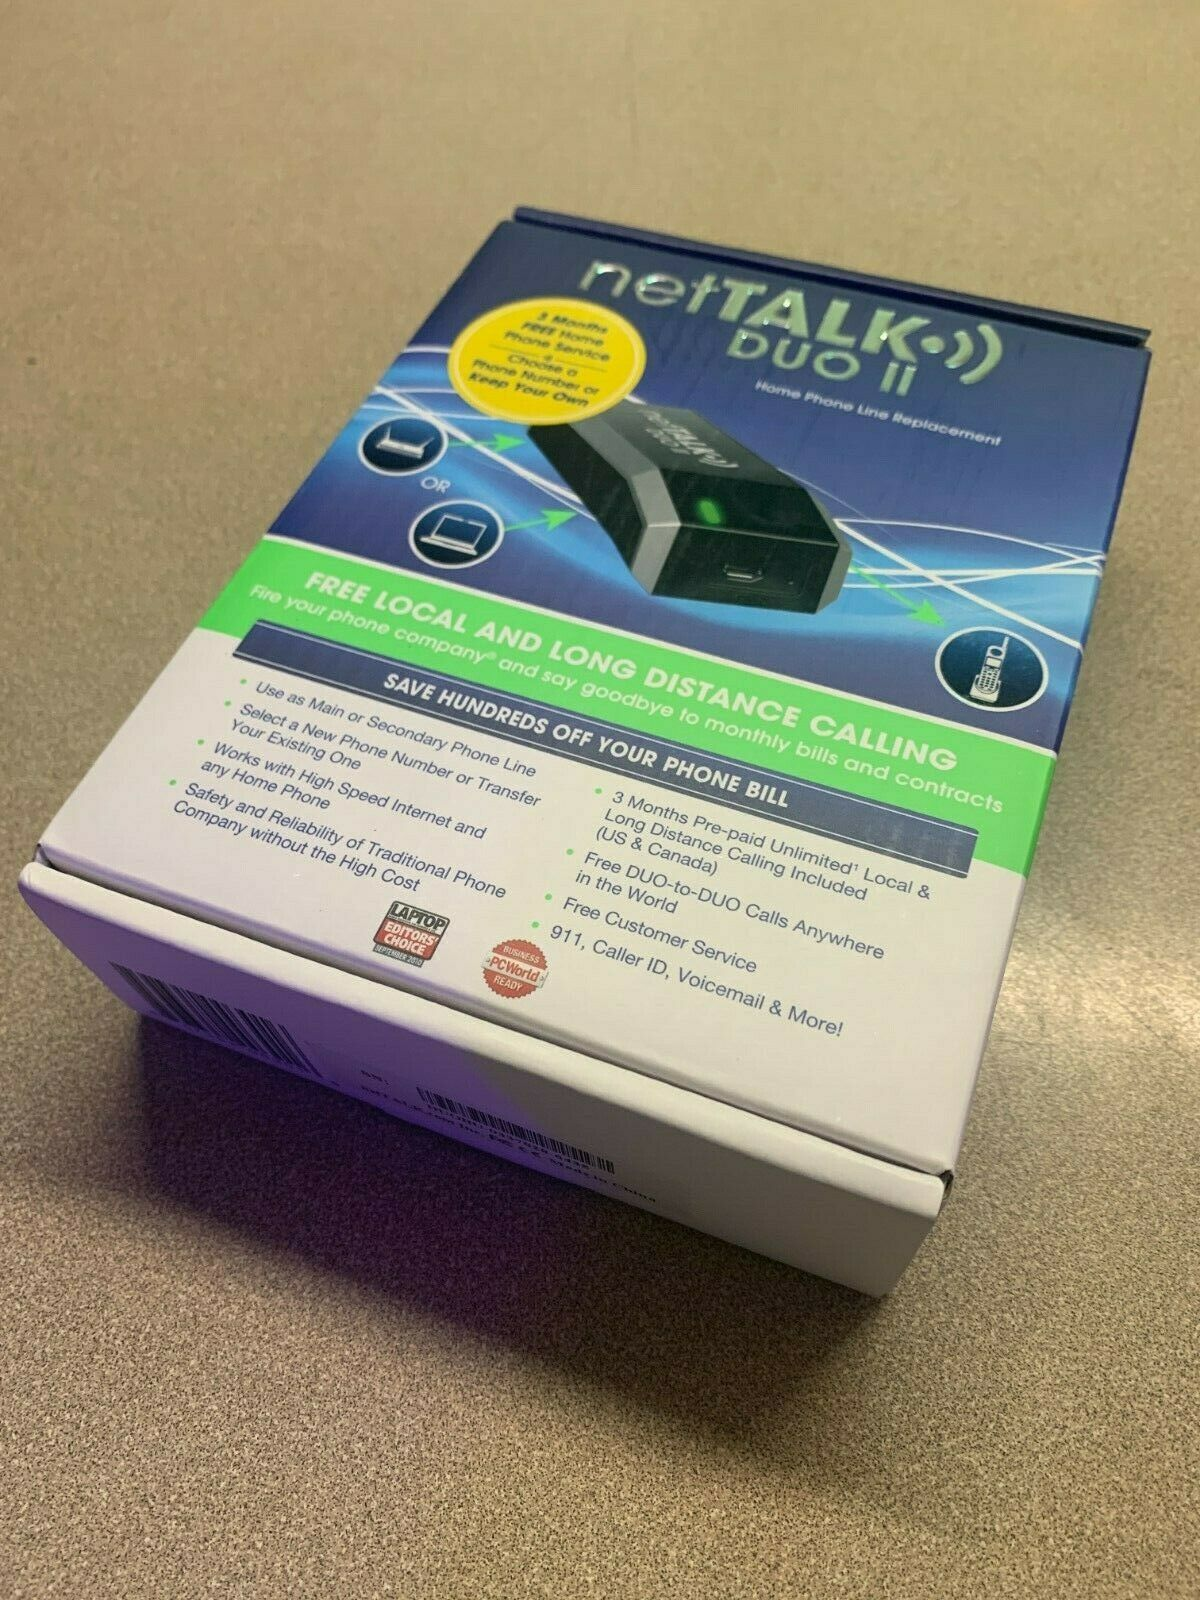 New NetTalk Duo II VoIP Home Phone Device With 3 Month Activ